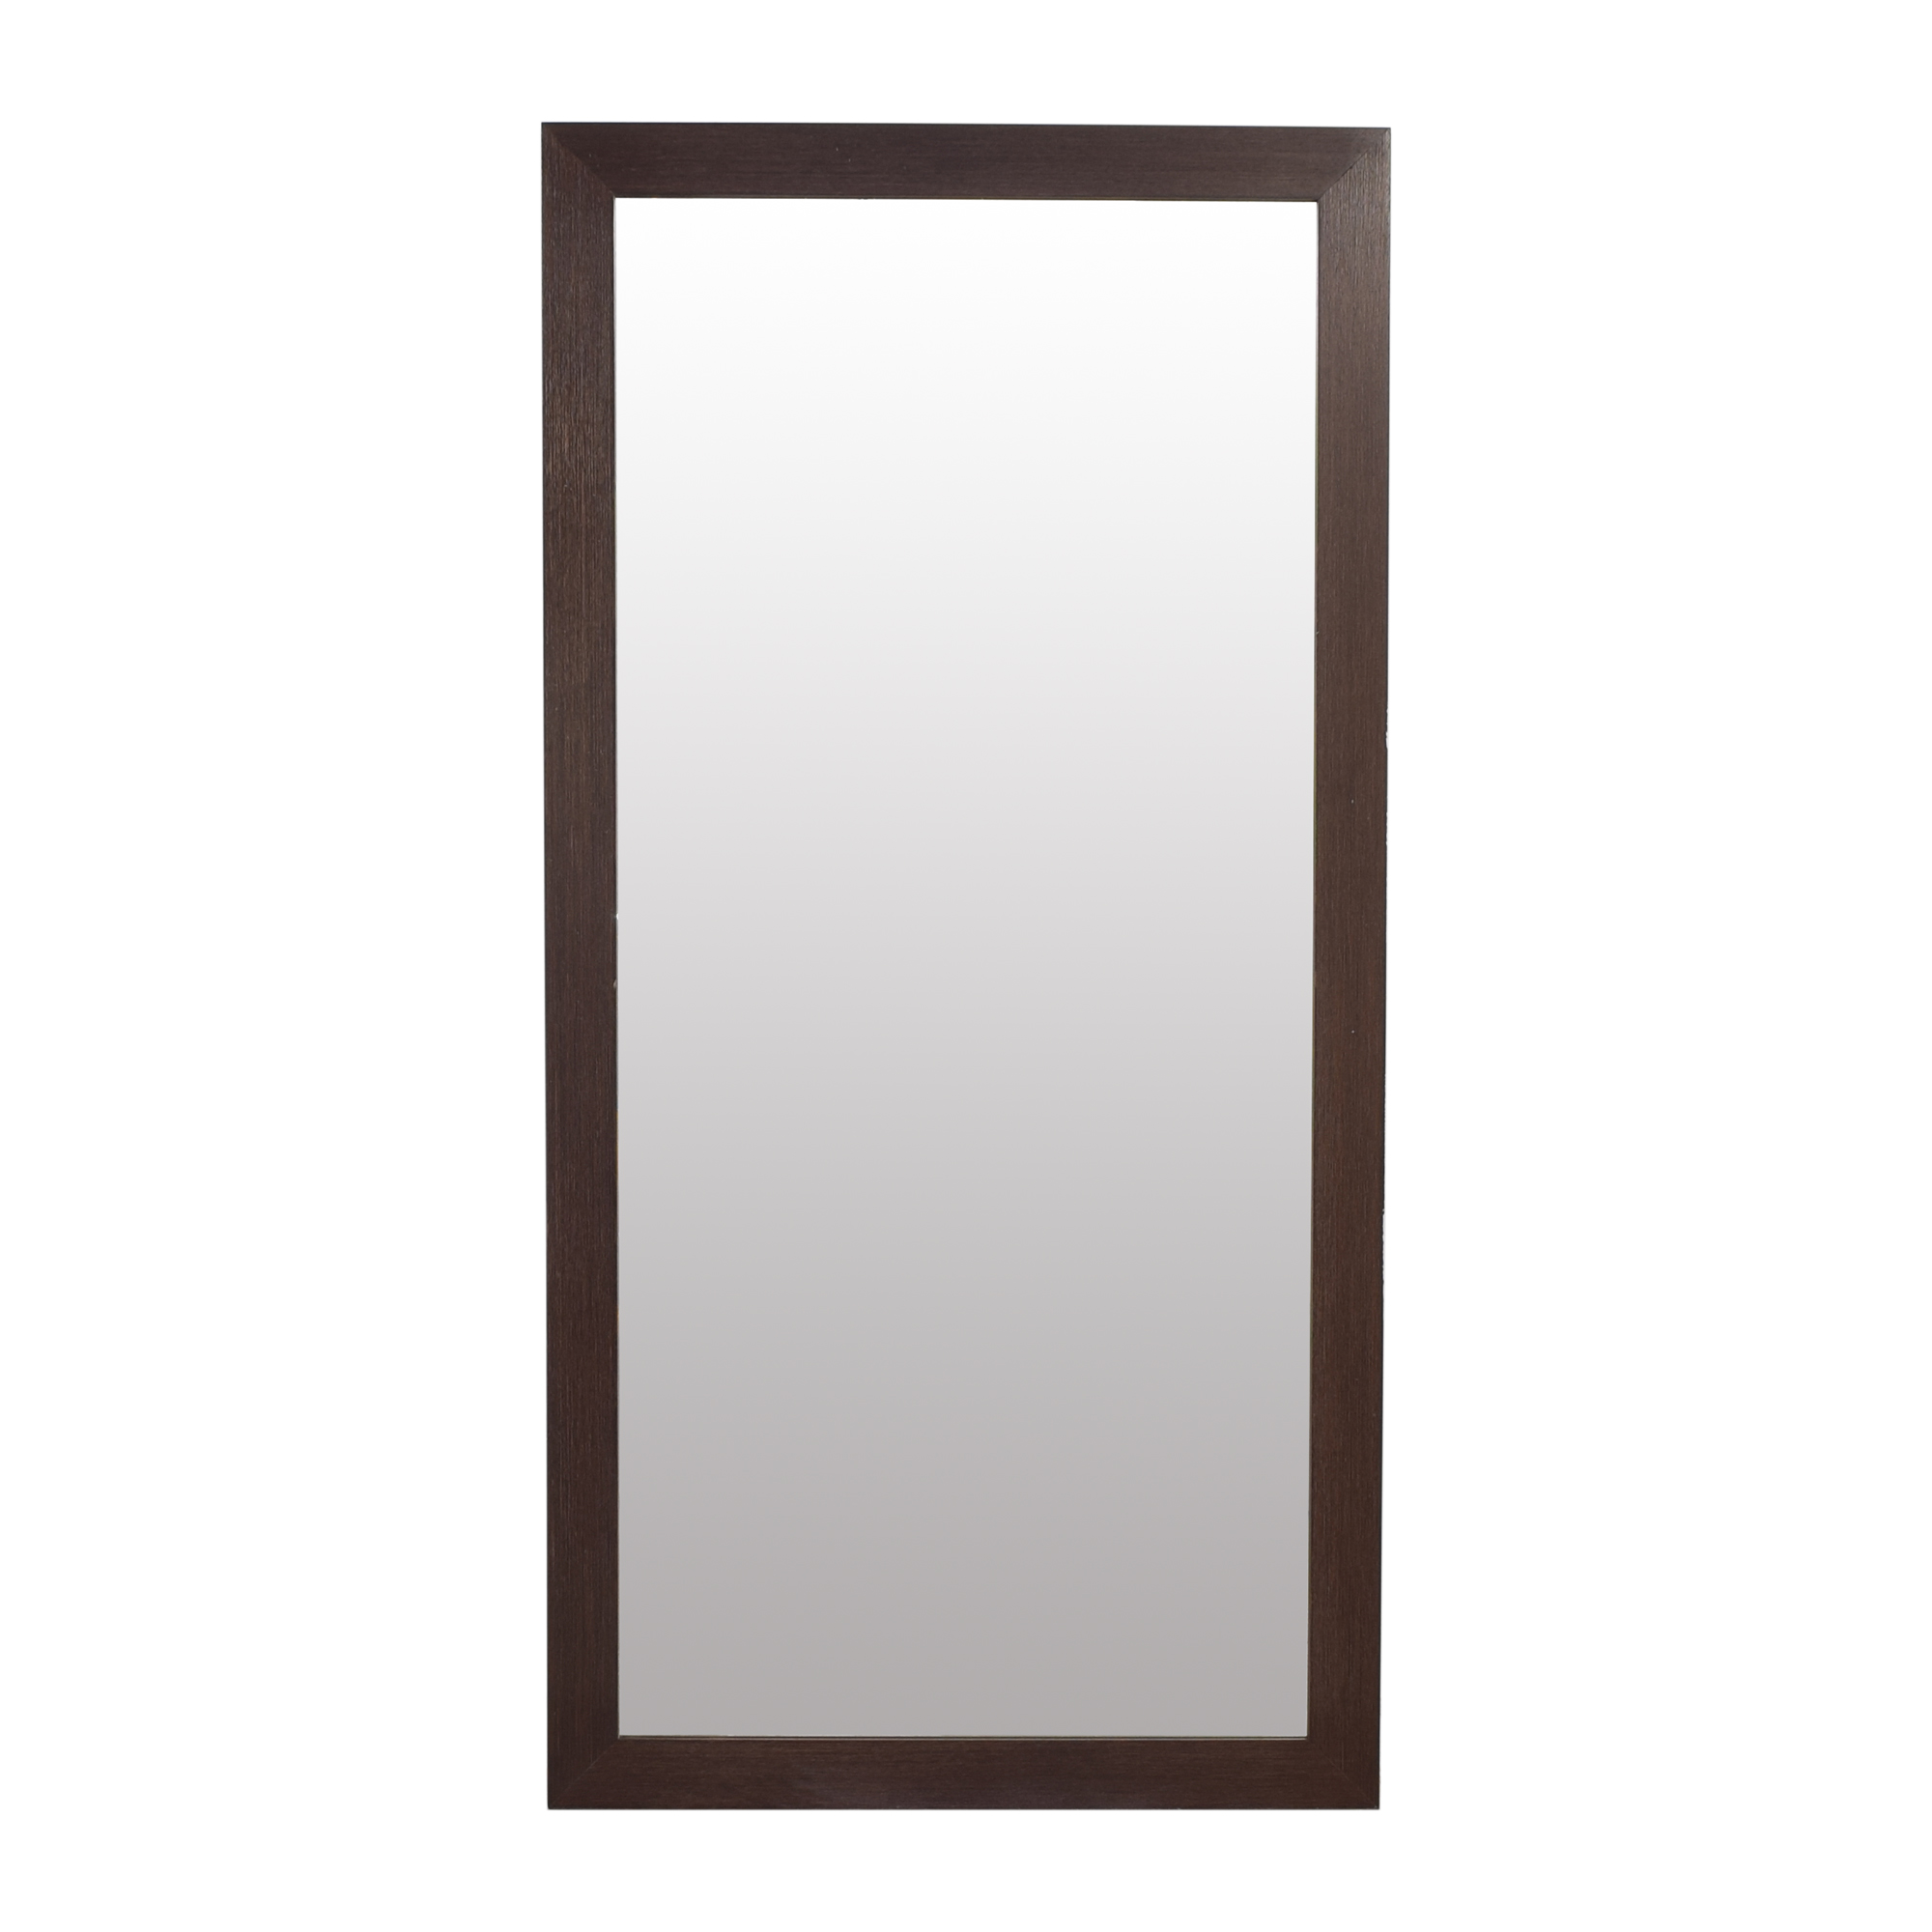 Tall Framed Mirror ma